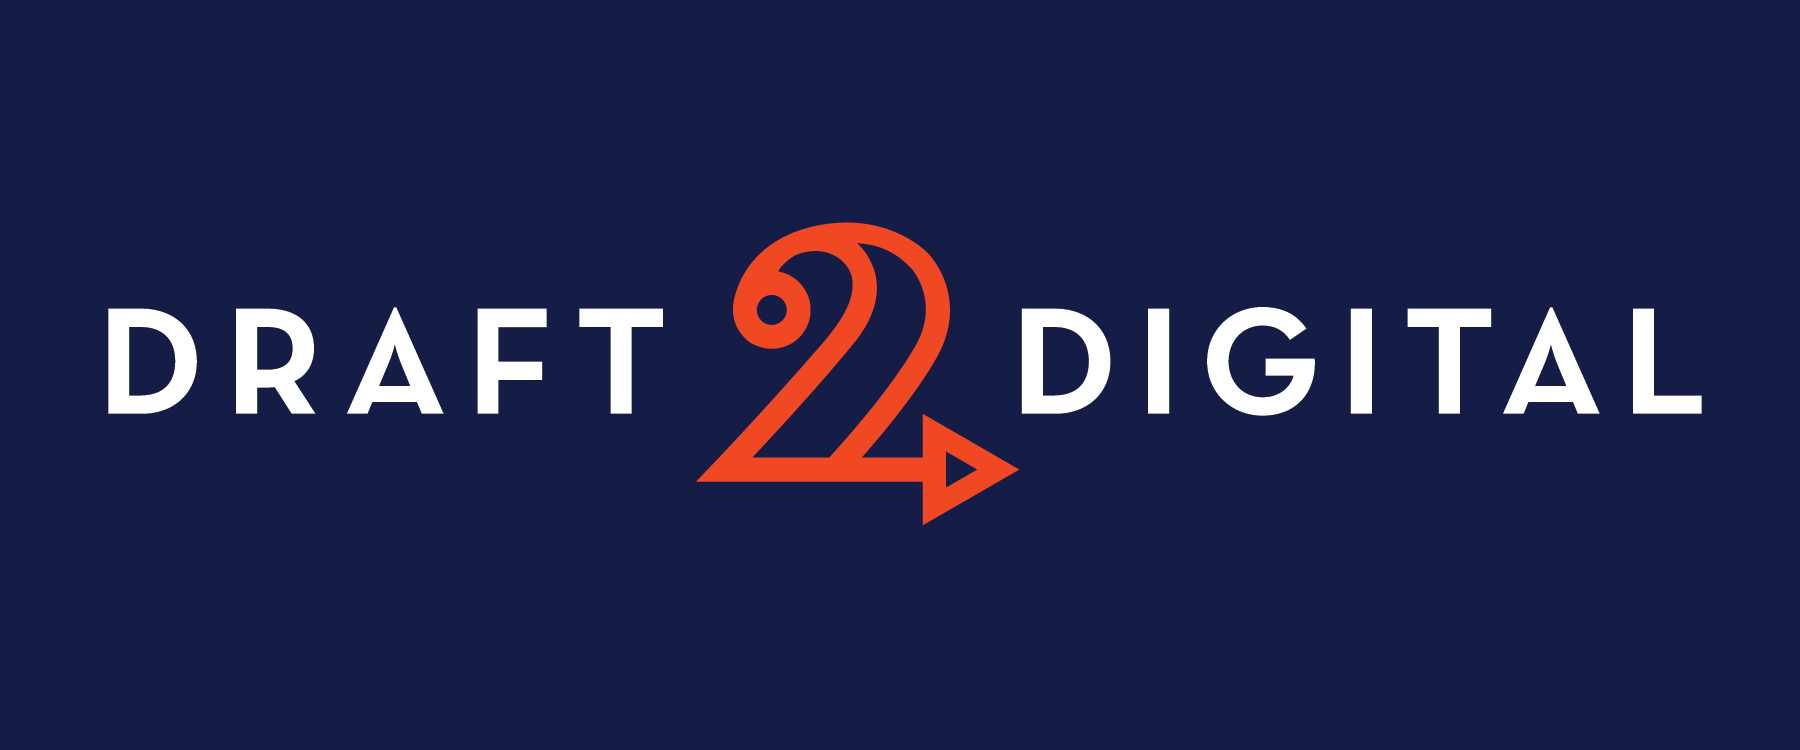 Self-Publish with Support at Draft2Digital.com